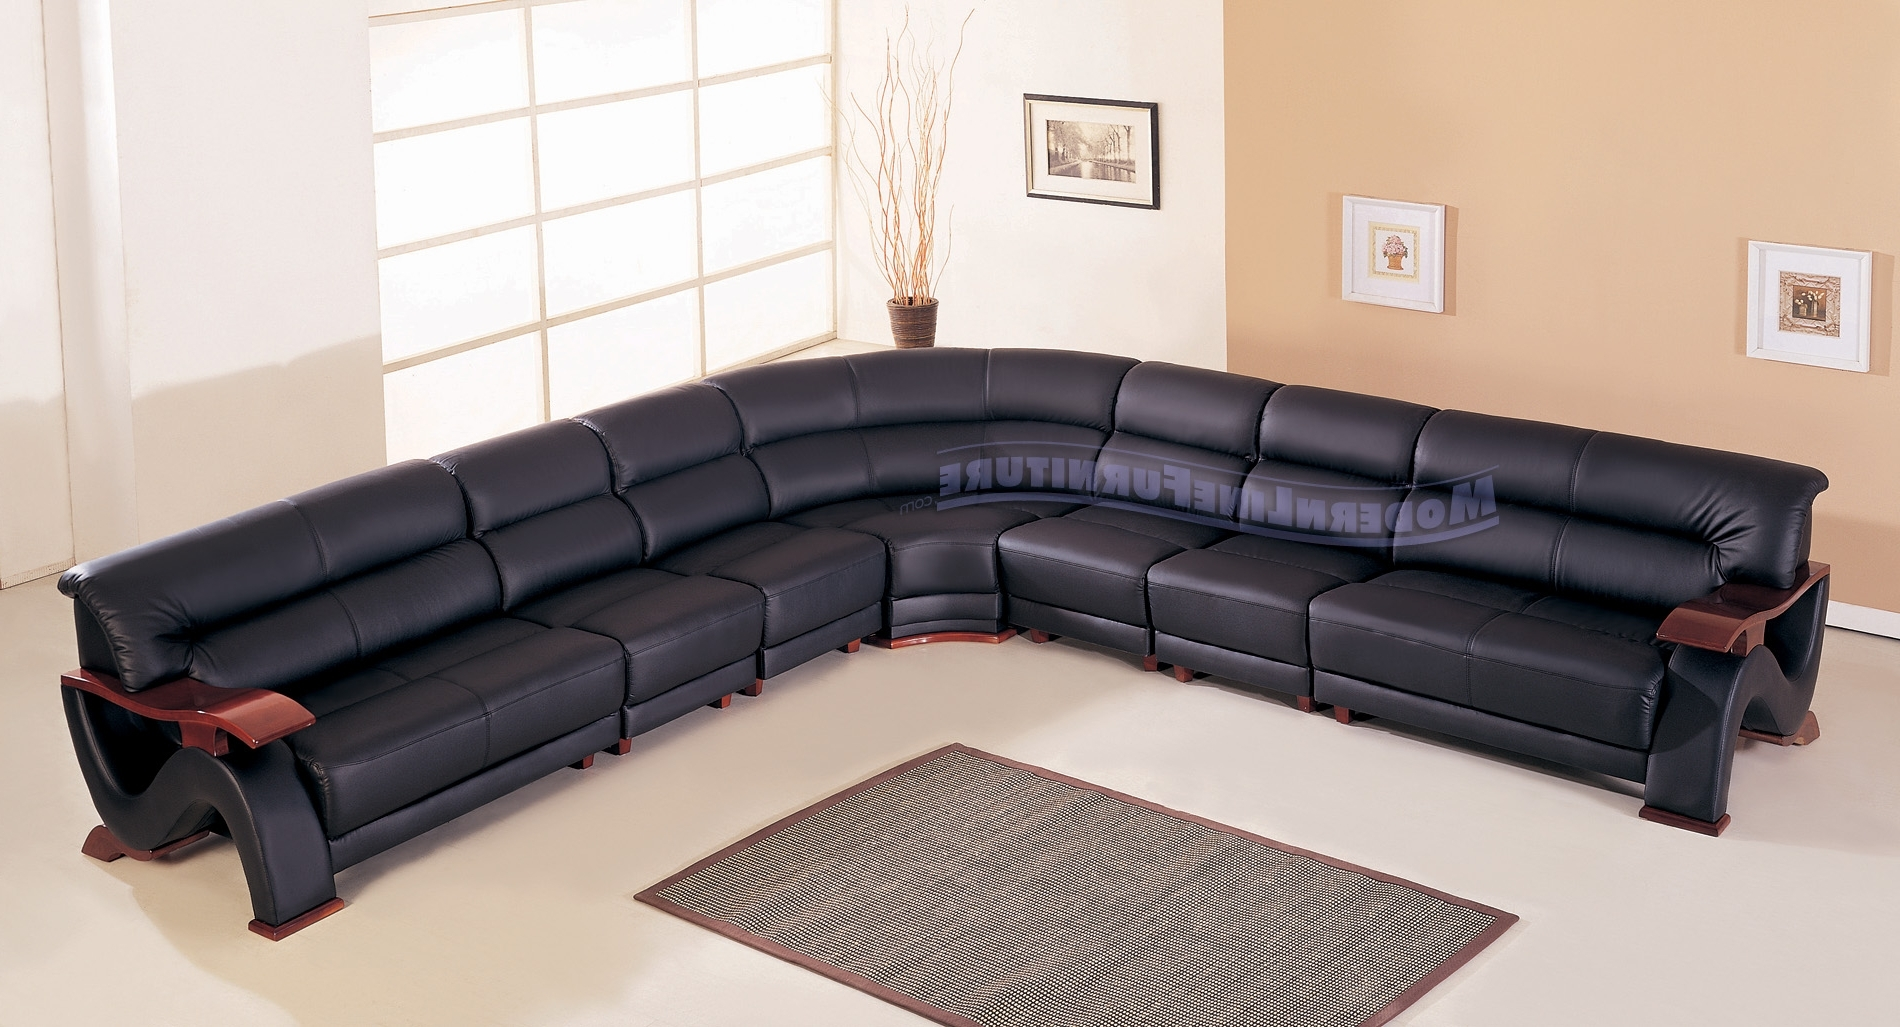 2018 Deep Seating Sectional Sofas Inside Sofa : 120 Inch Sectional Sofa With Chaise U Shaped Sectional Deep (View 2 of 15)